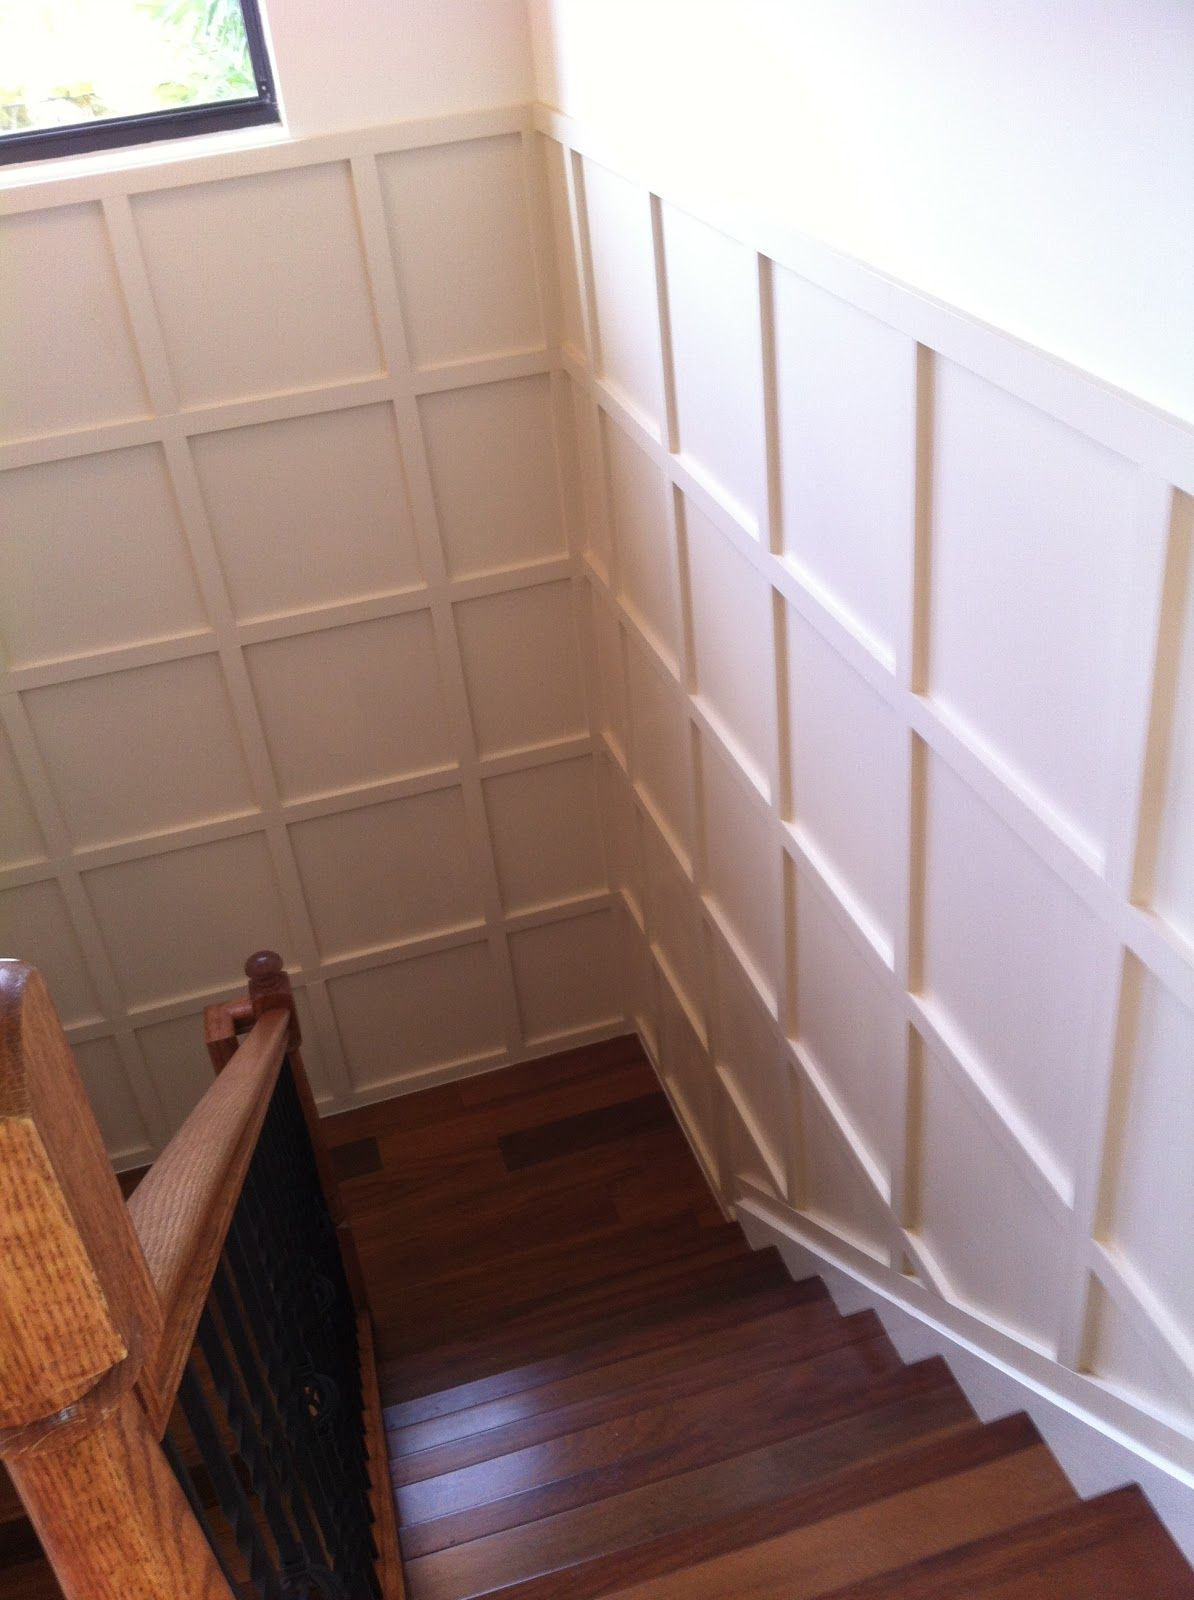 wainscoting staircase design idea | Molding and Wainscoting ...